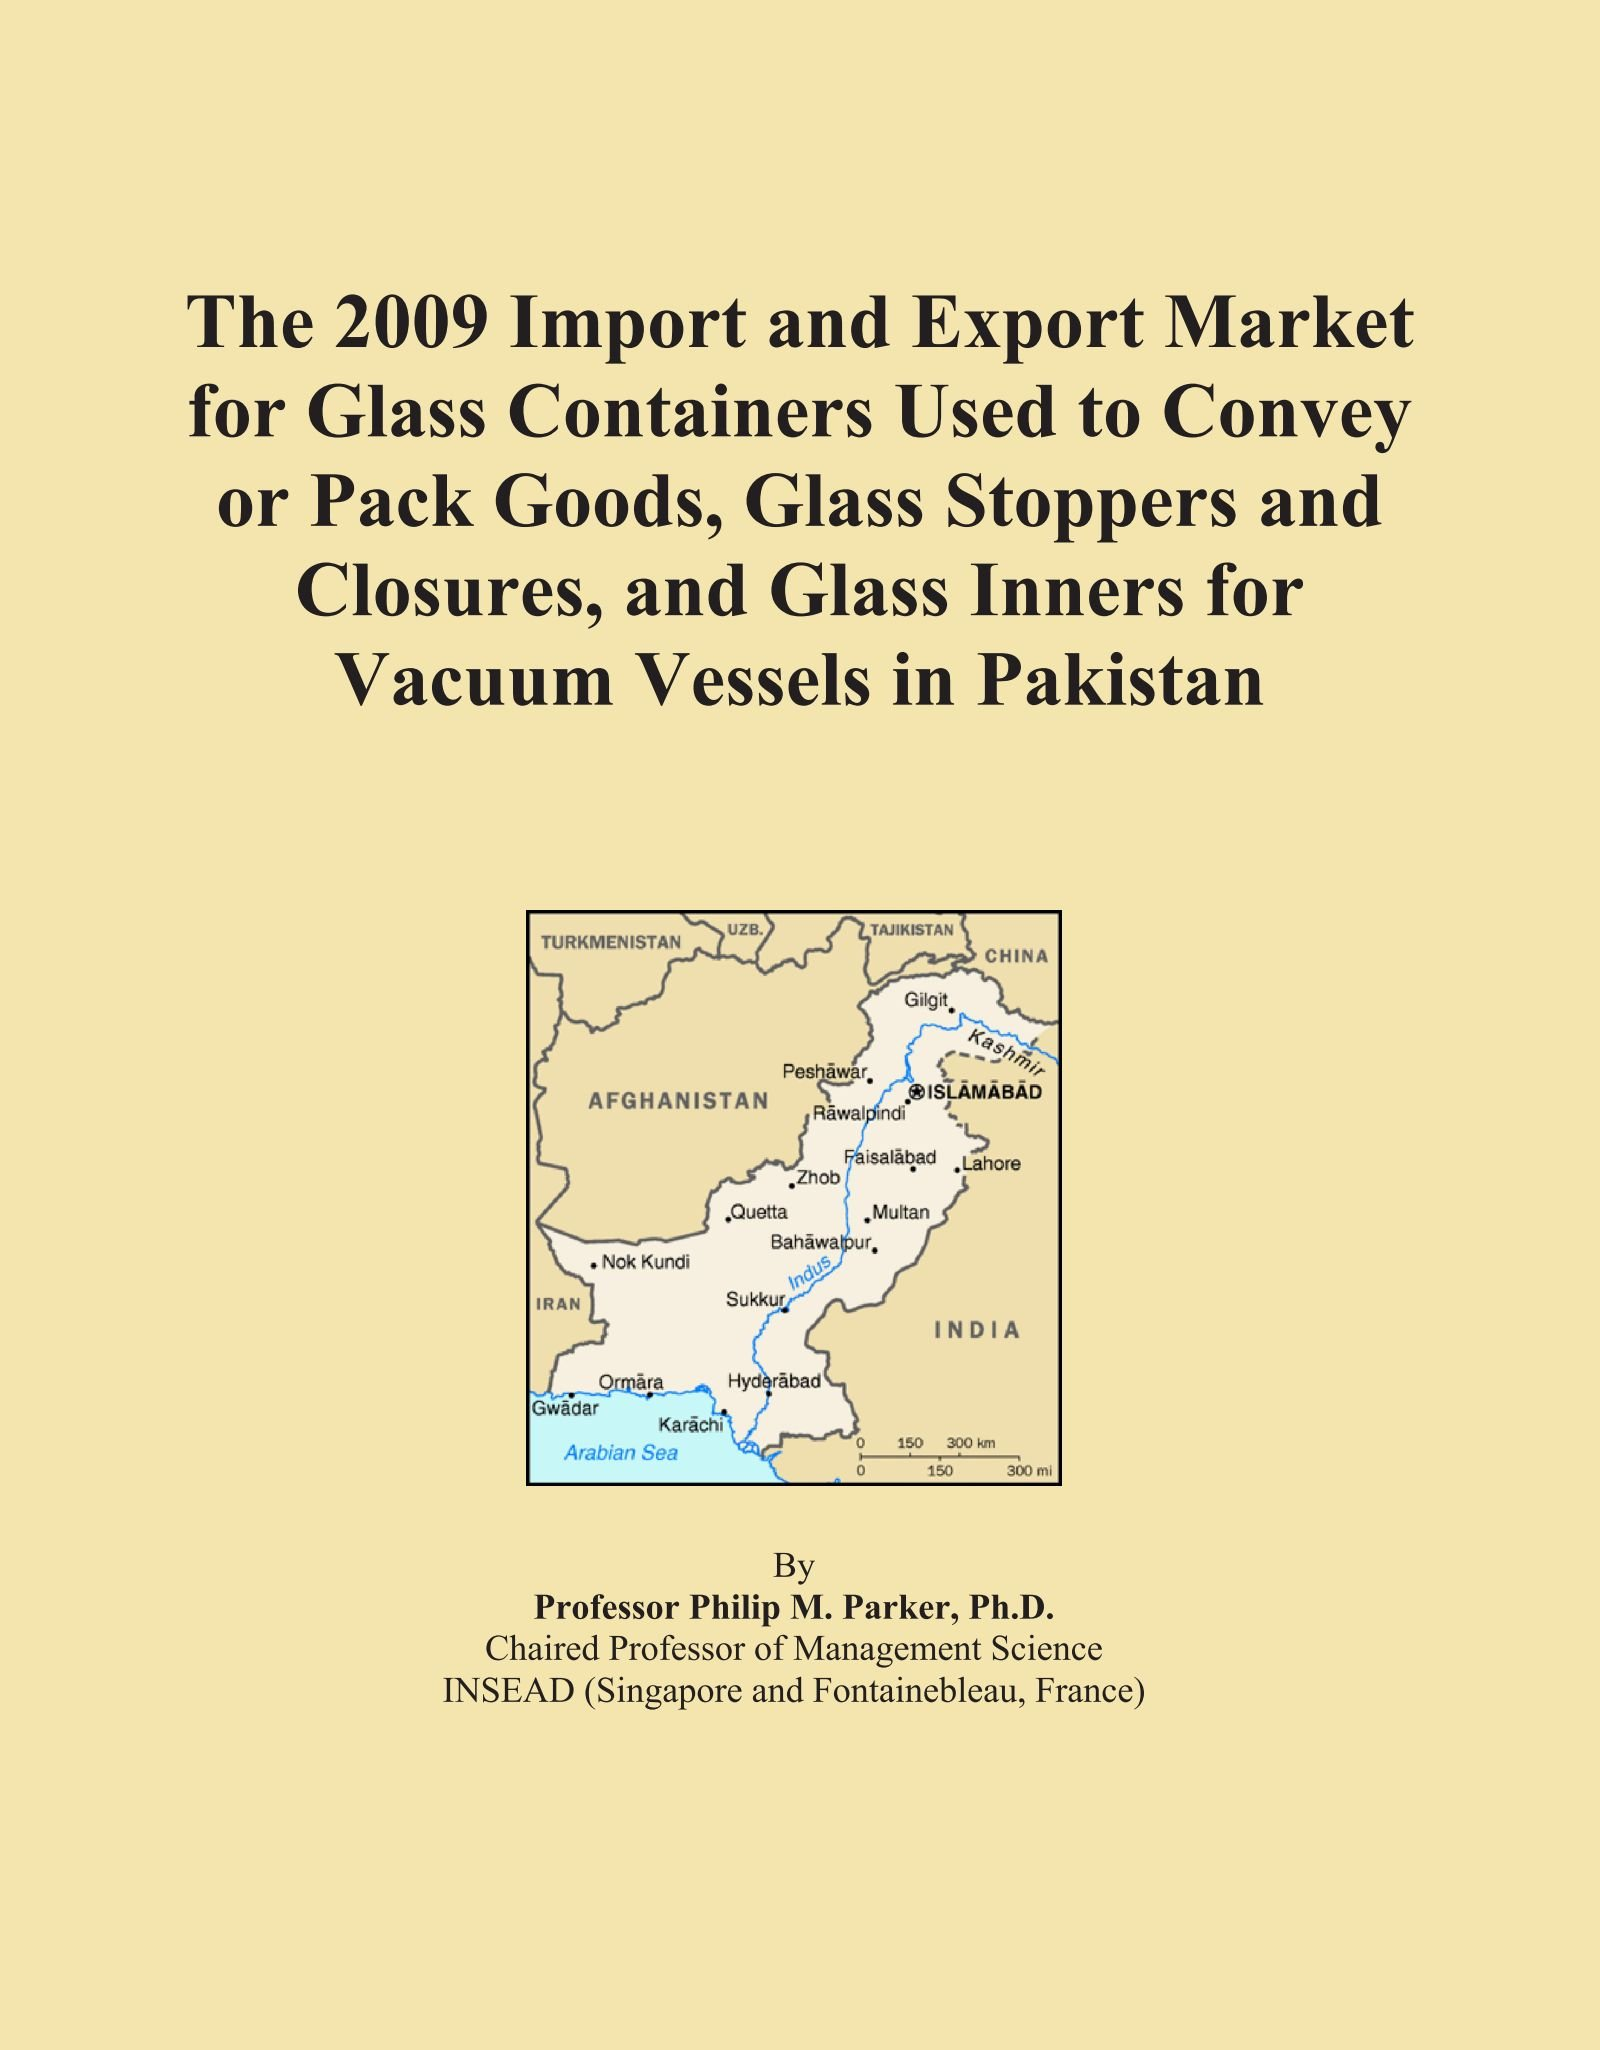 Download The 2009 Import and Export Market for Glass Containers Used to Convey or Pack Goods, Glass Stoppers and Closures, and Glass Inners for Vacuum Vessels in Pakistan PDF